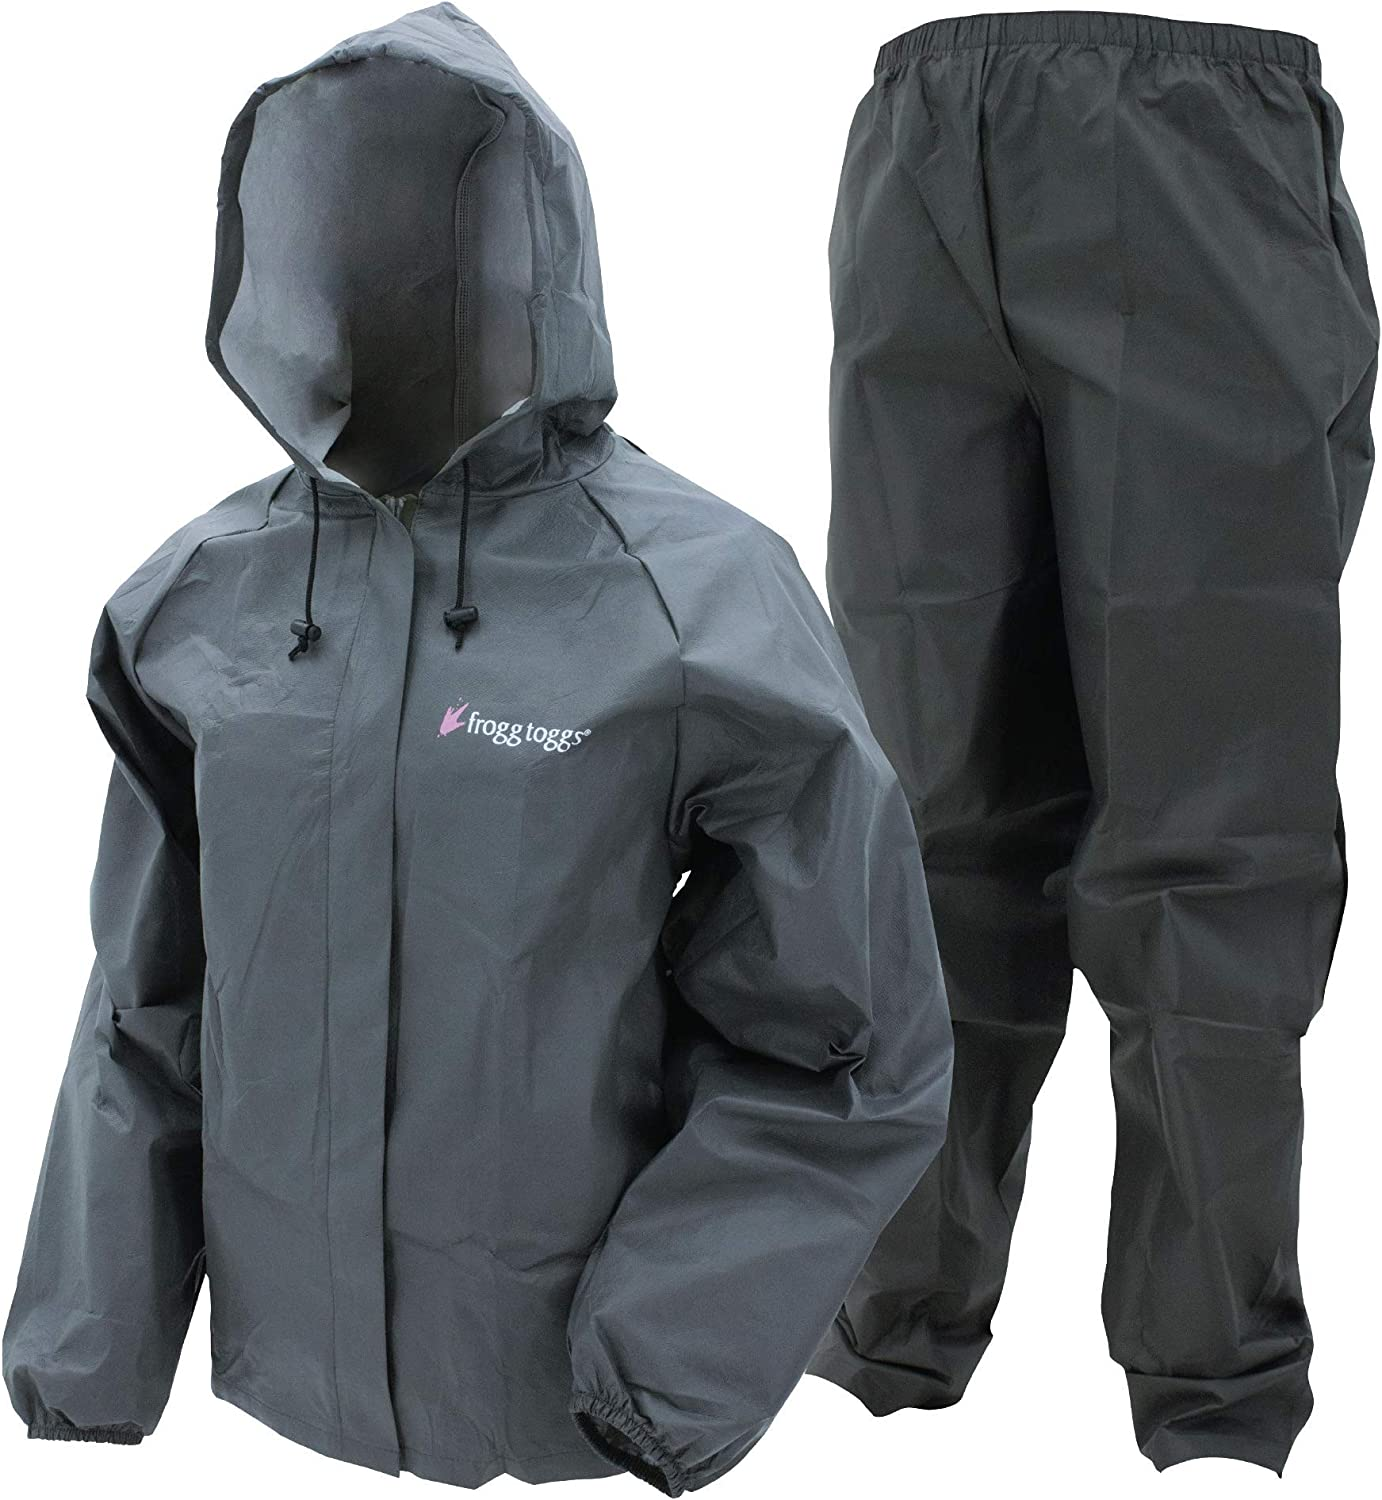 FROGG TOGGS Women's Ultra-Lite2 Waterproof Breathable Protective Rain Suit